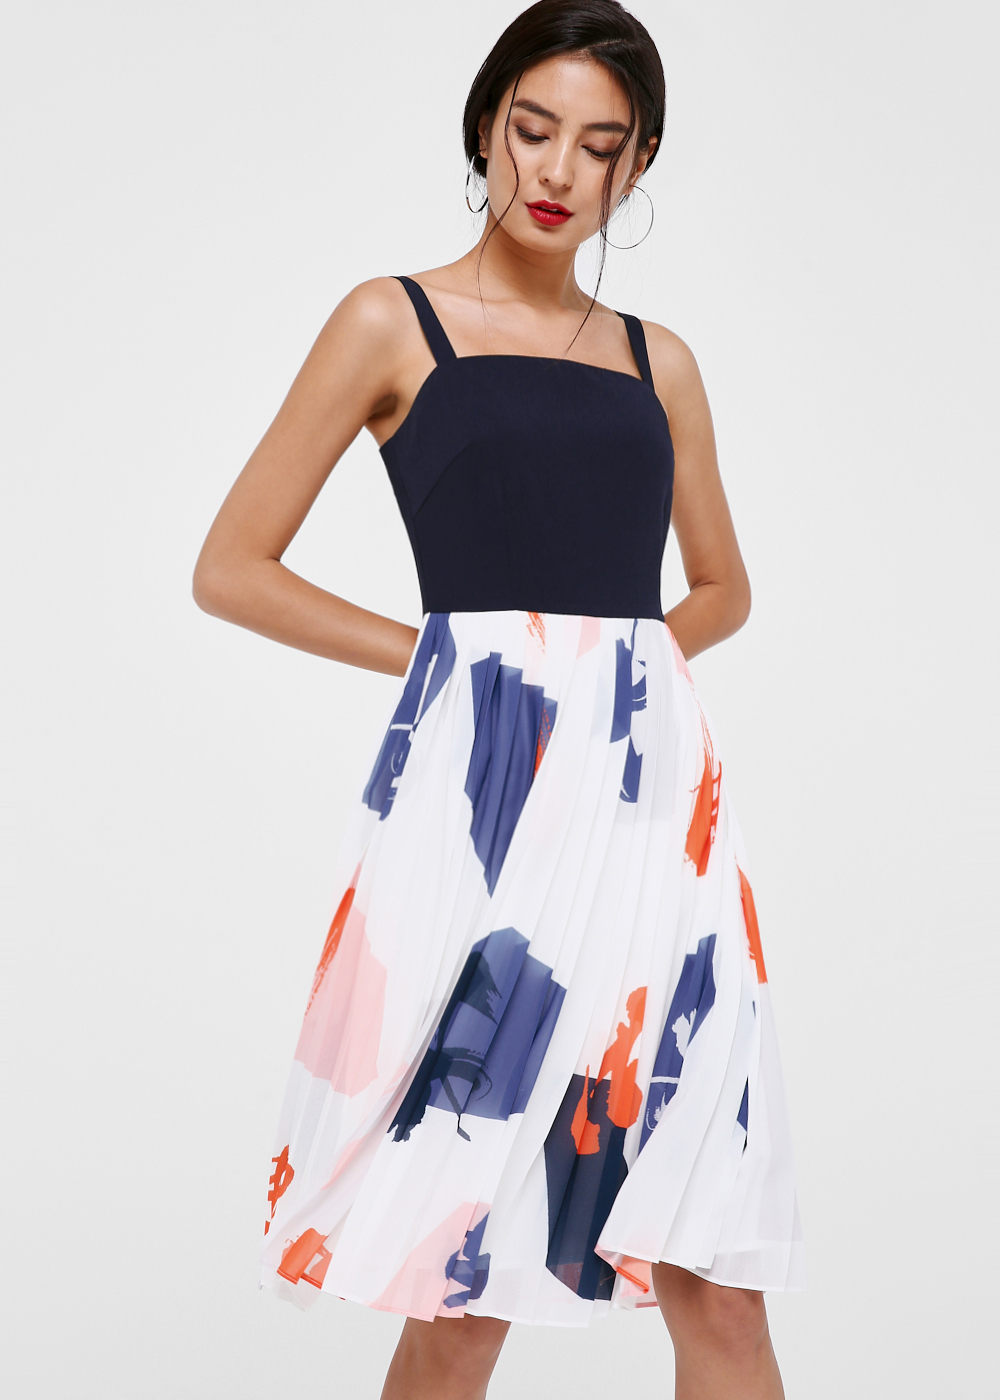 Briella Printed Pleat Dress in Artful Zest